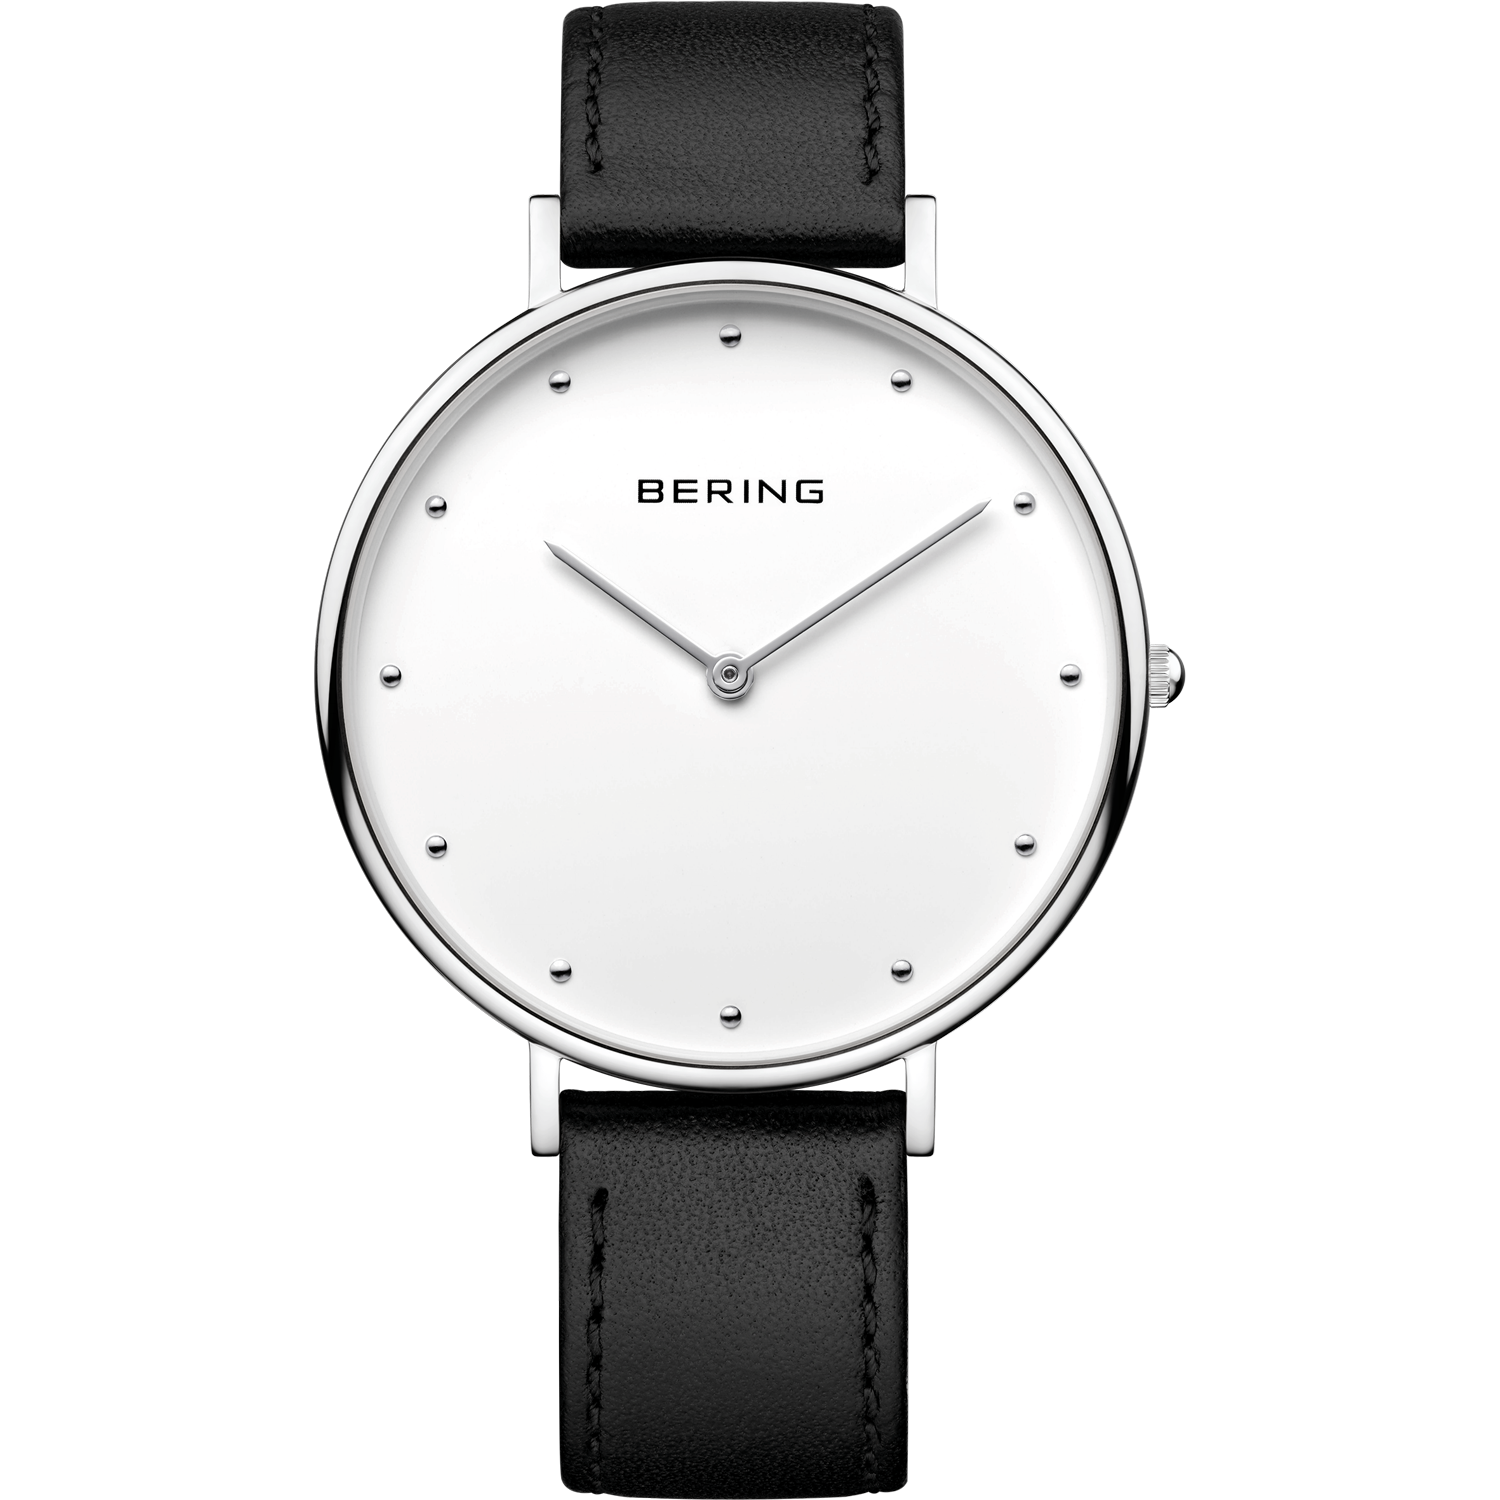 ering Watches Plymouth, Drakes Jewellers Plymouth